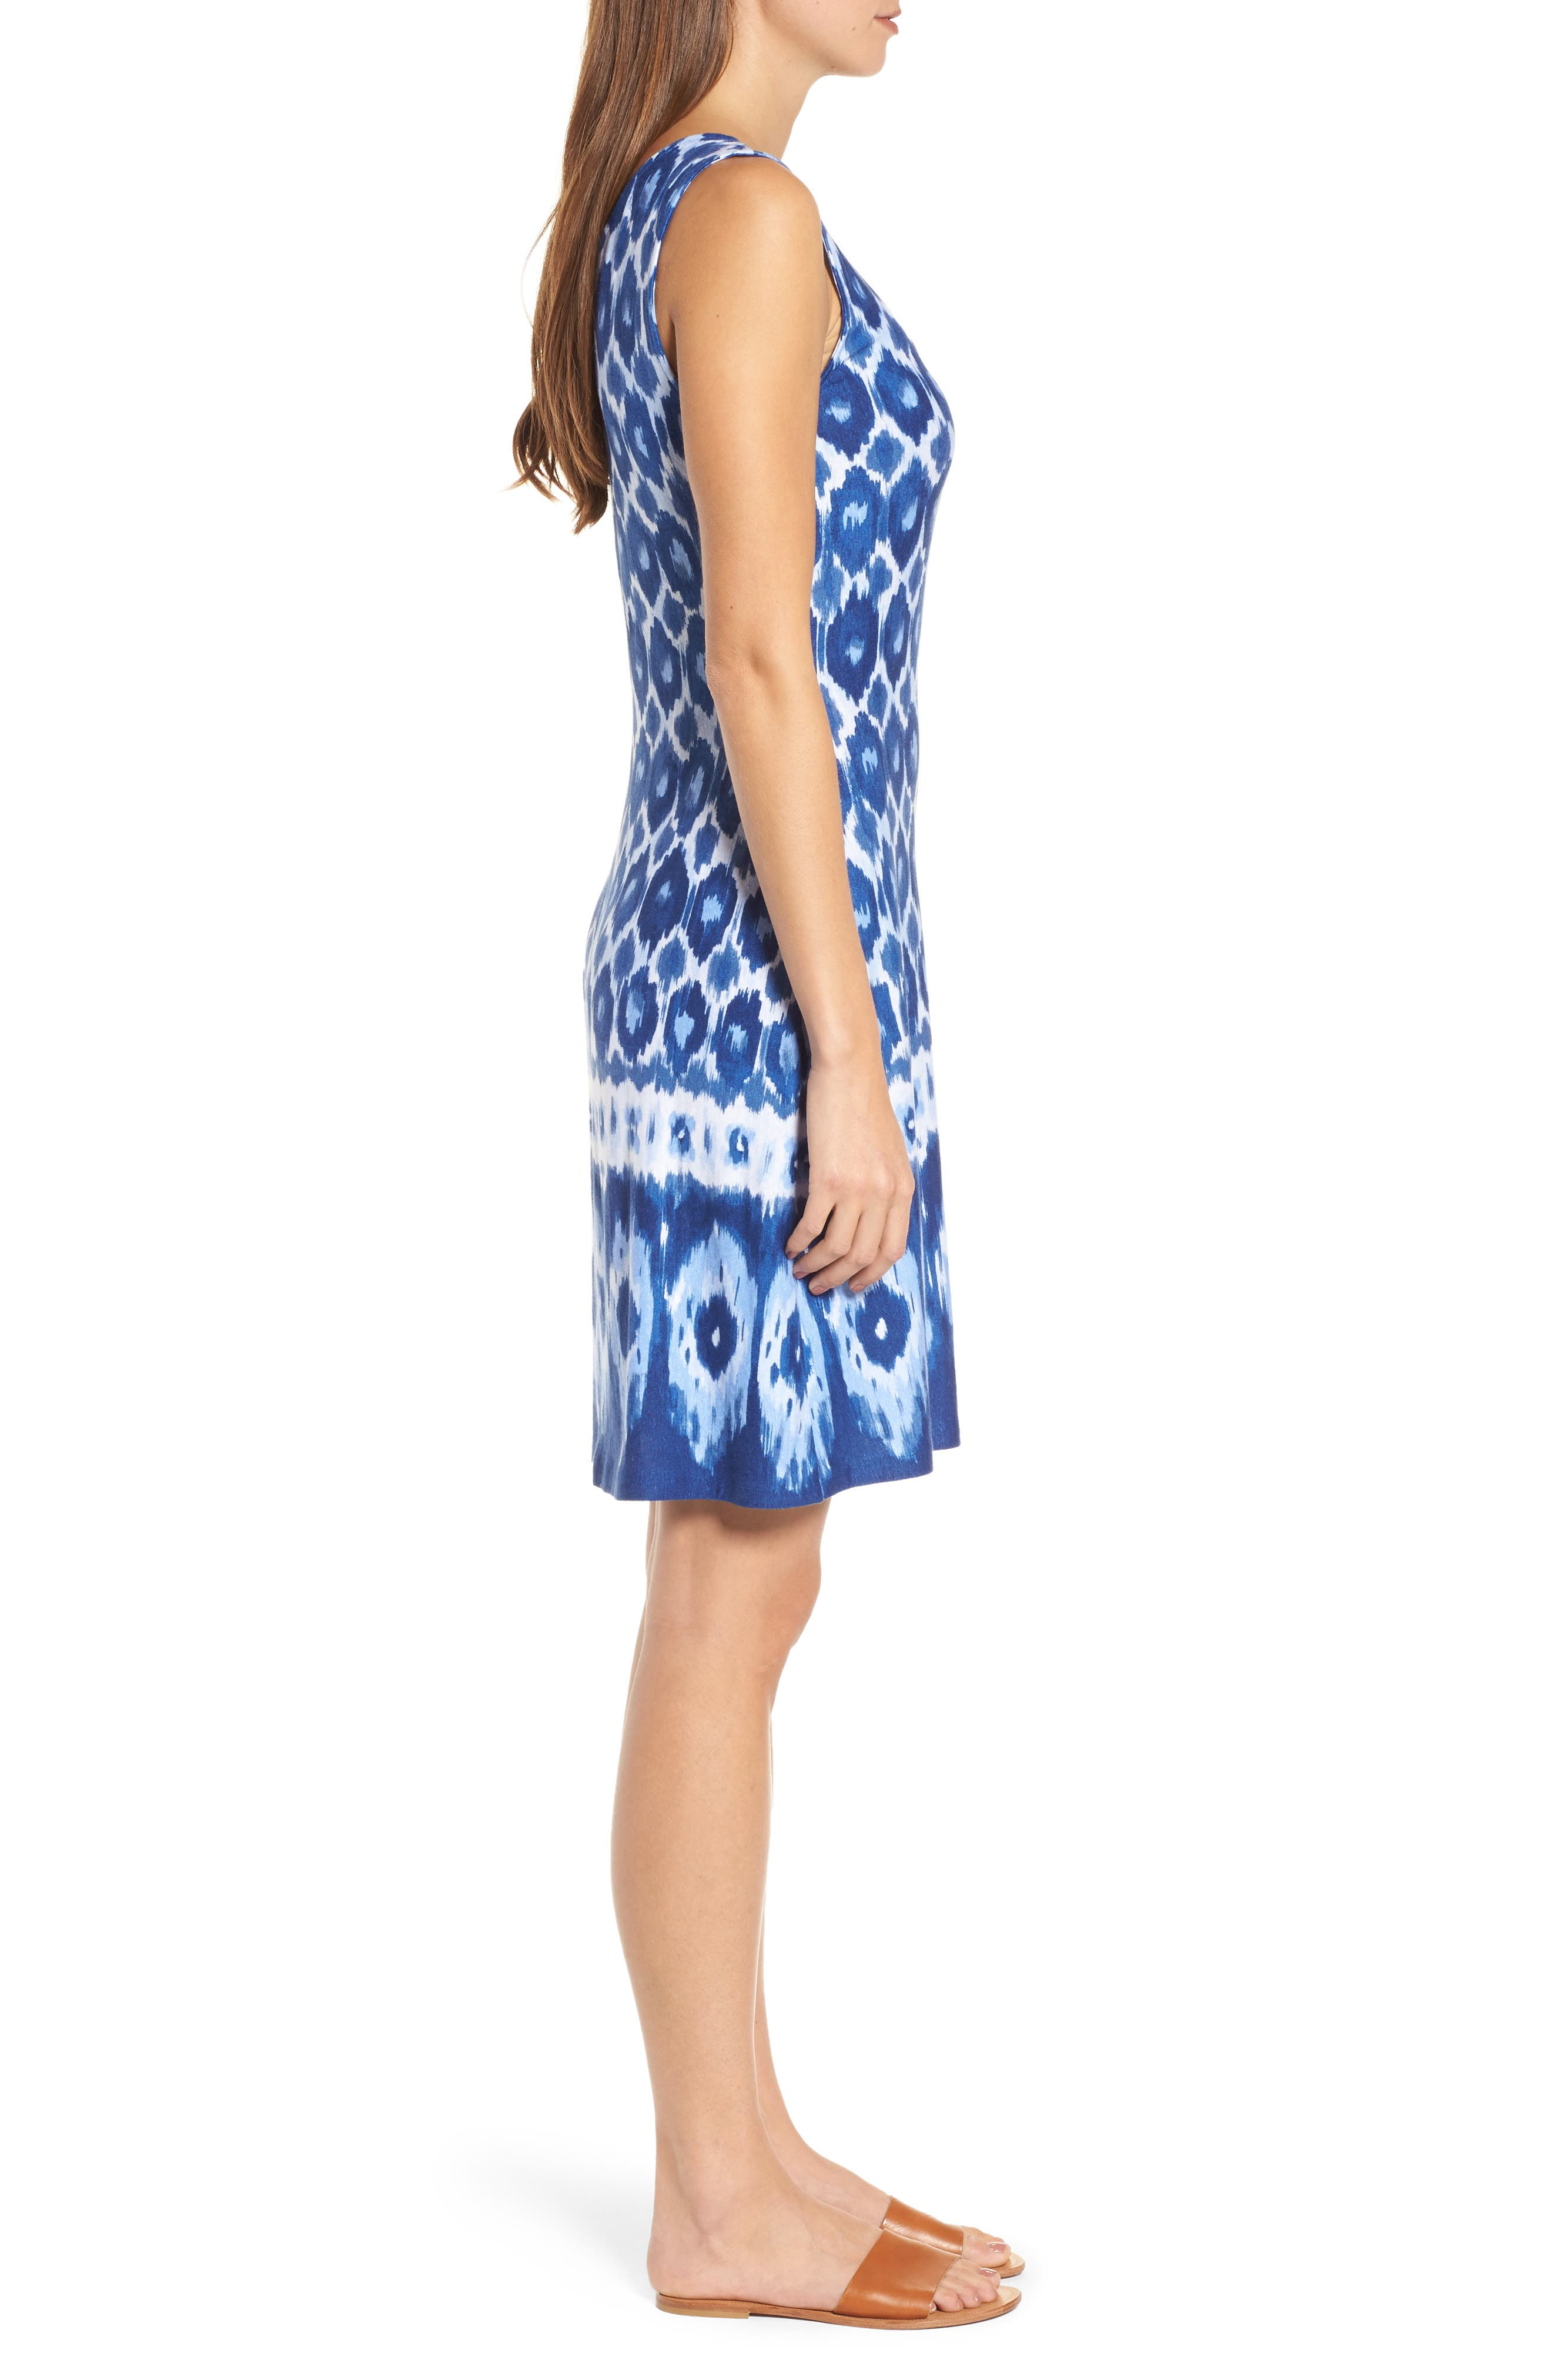 Innercoastal Ikat Sleeveless Dress,                             Alternate thumbnail 3, color,                             Kingdom Blue